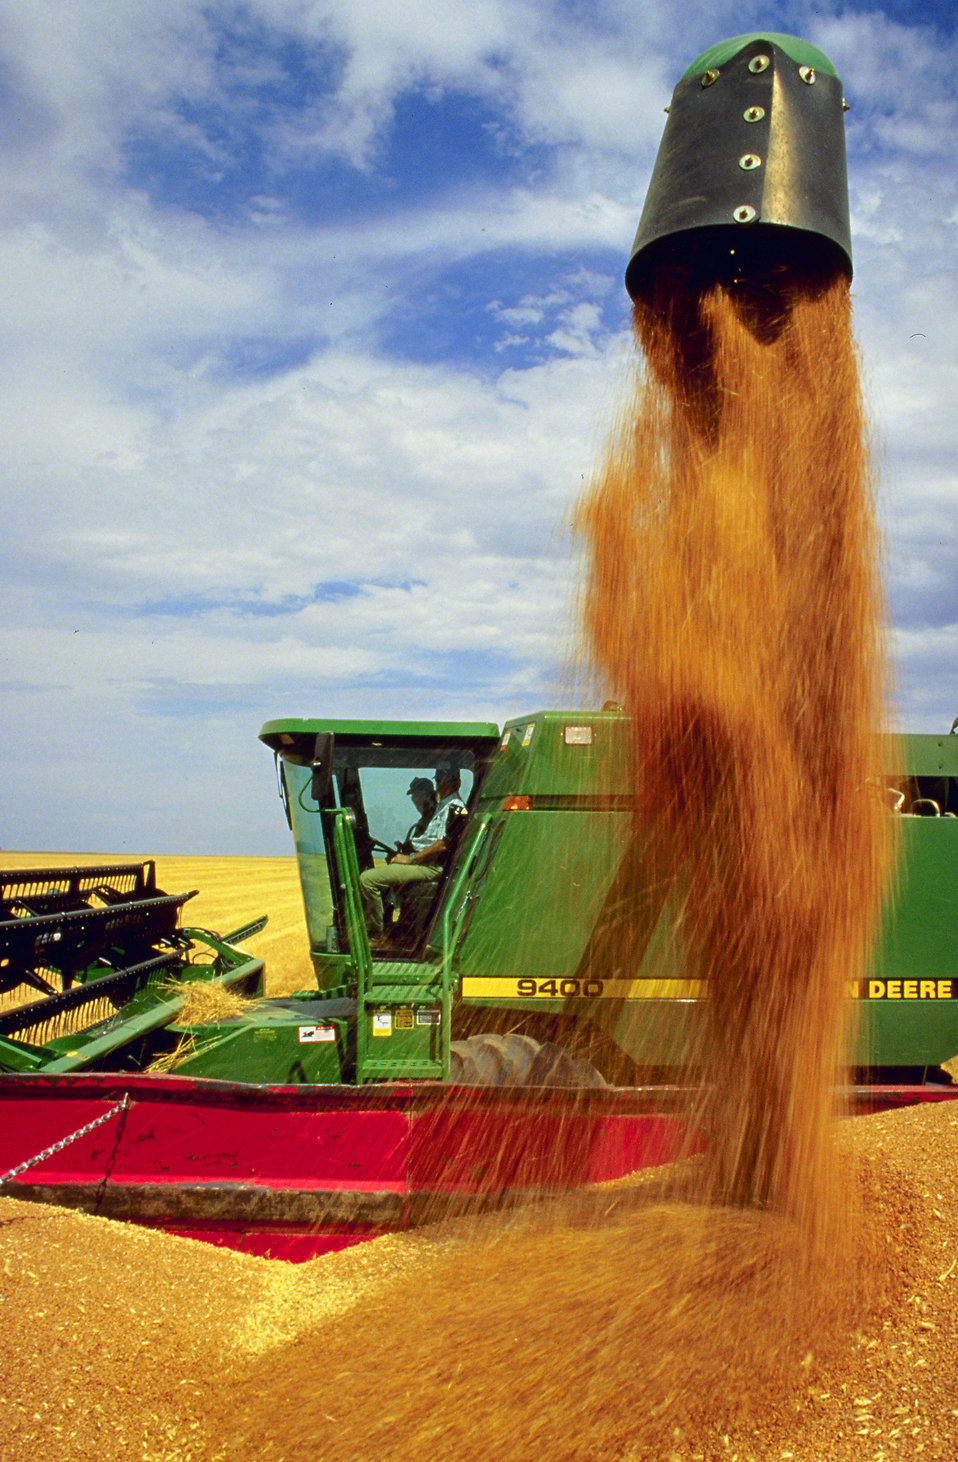 A combine dumping a harvested load of wheat : Free Stock Photo